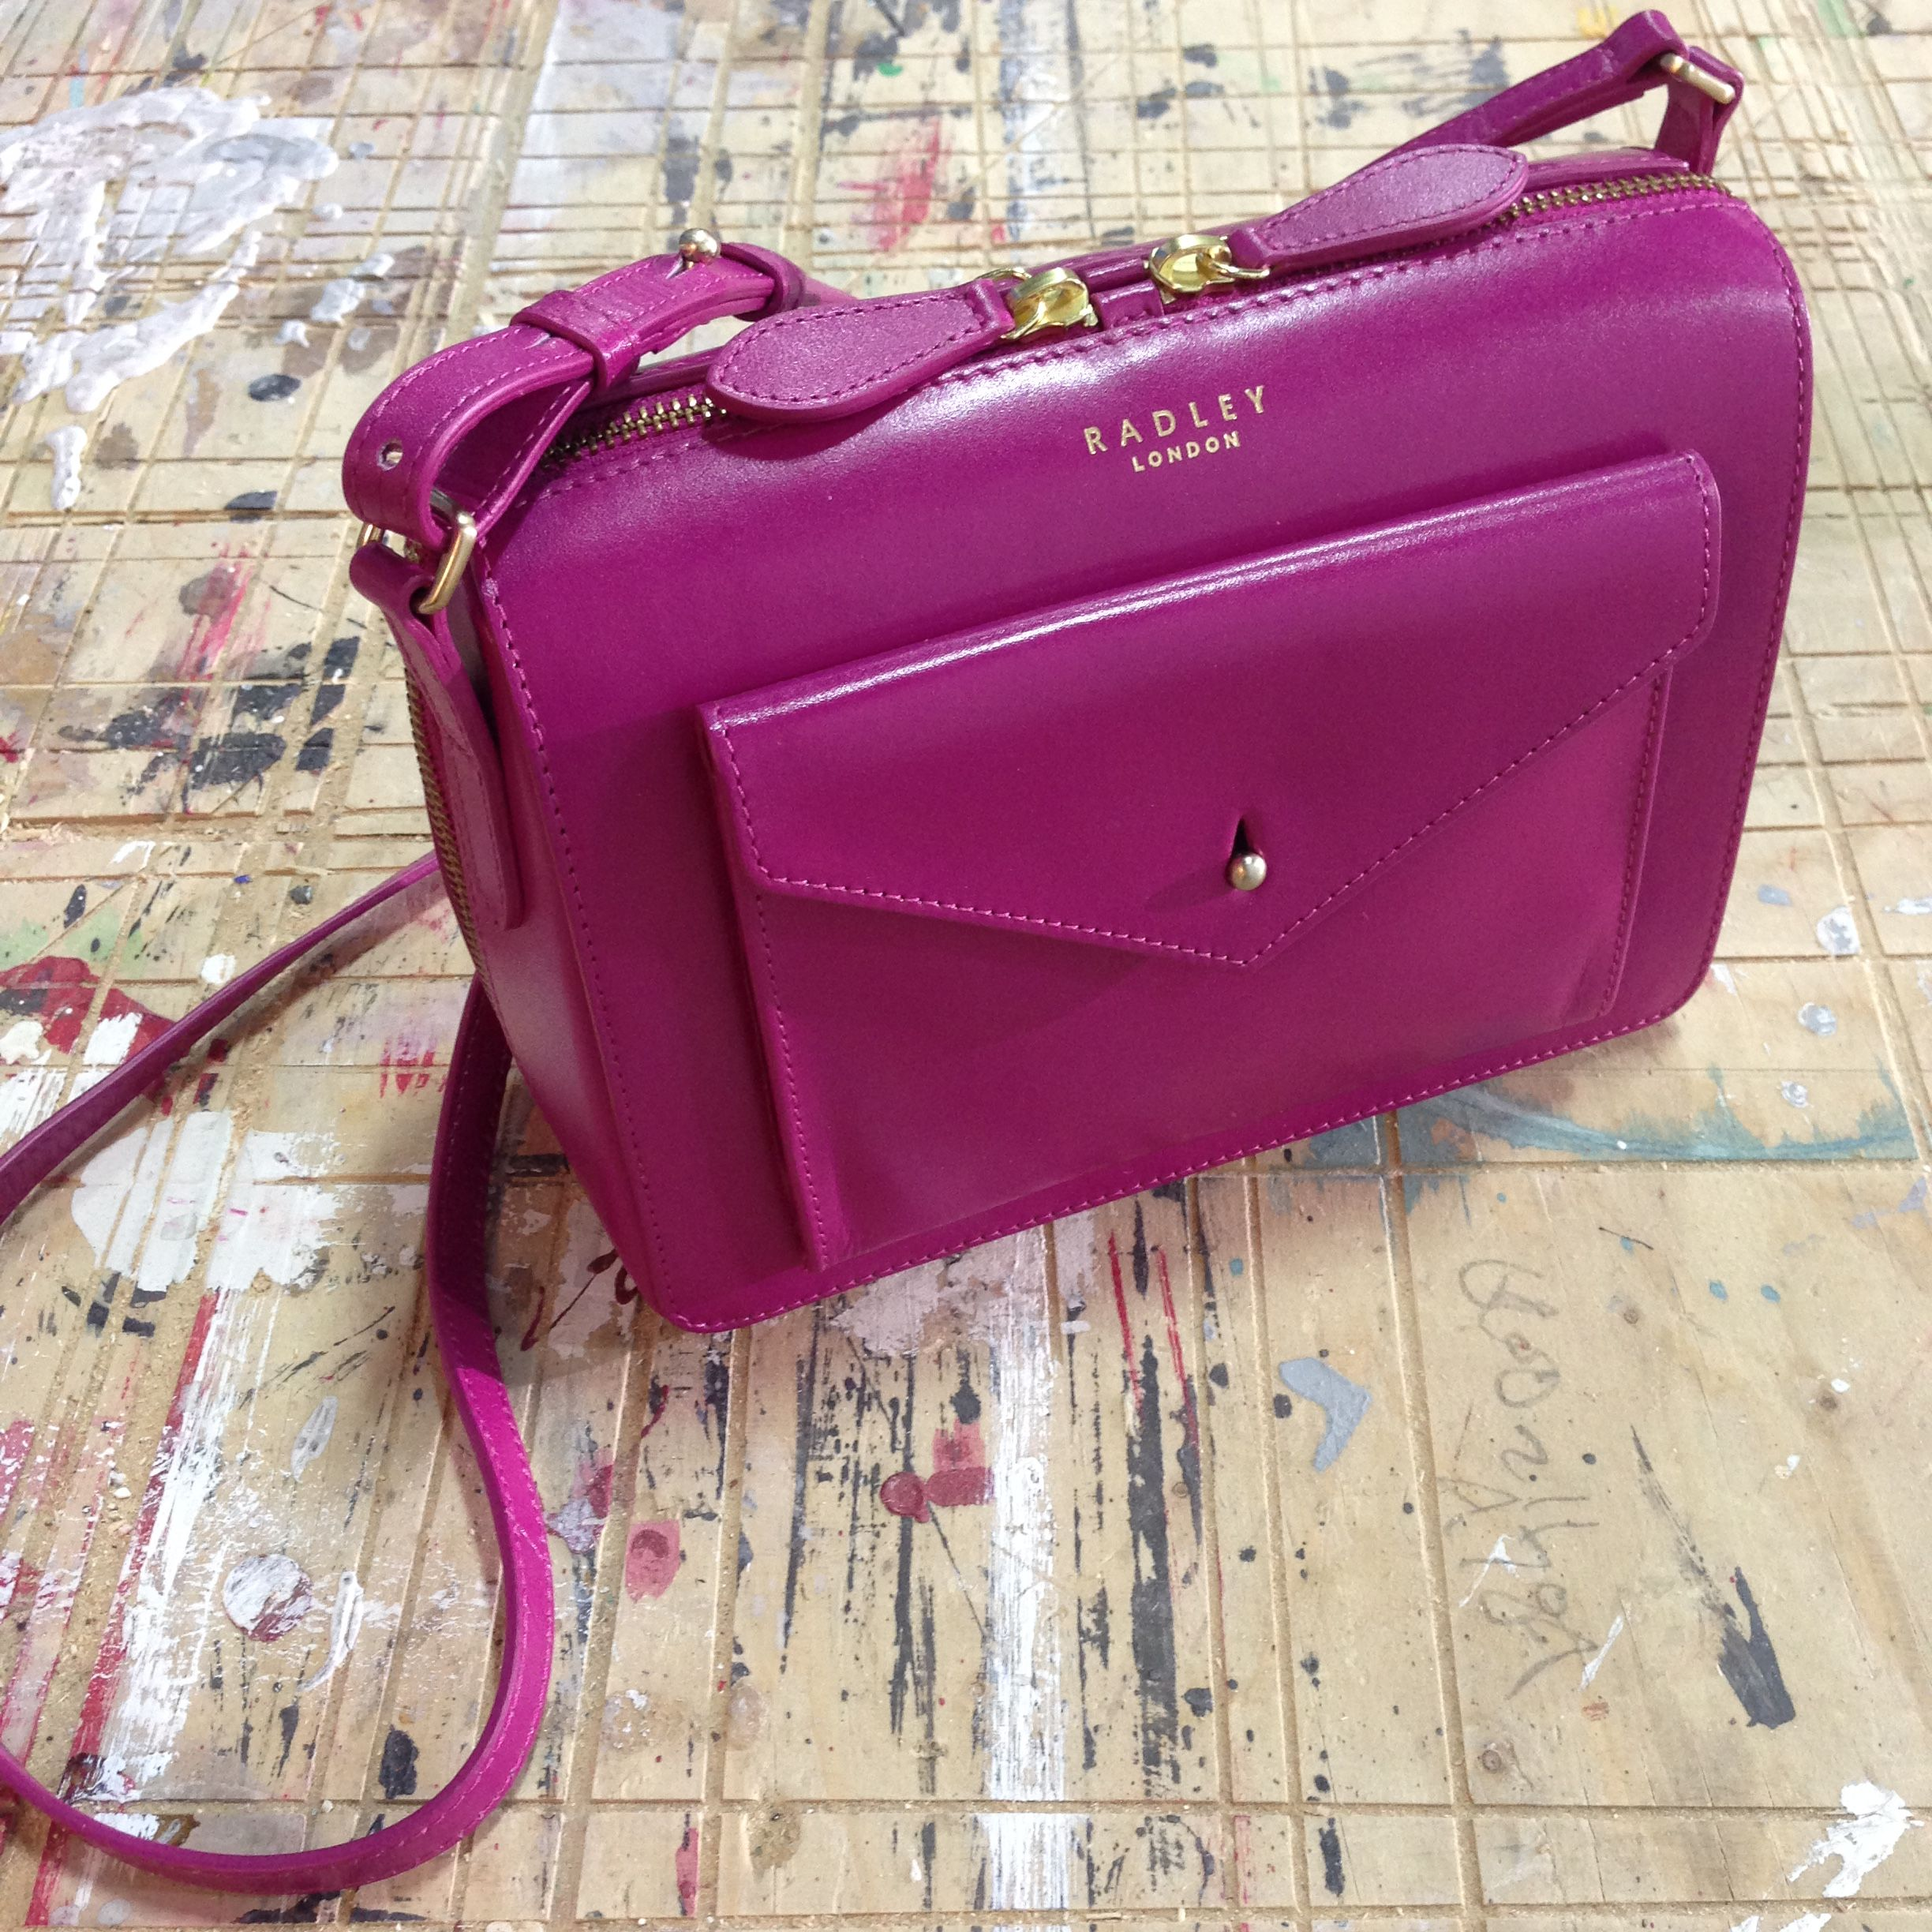 Radley ladies leather gloves - The Keats Grove Small Leather Zip Top Grab Bag Is A New Style For This